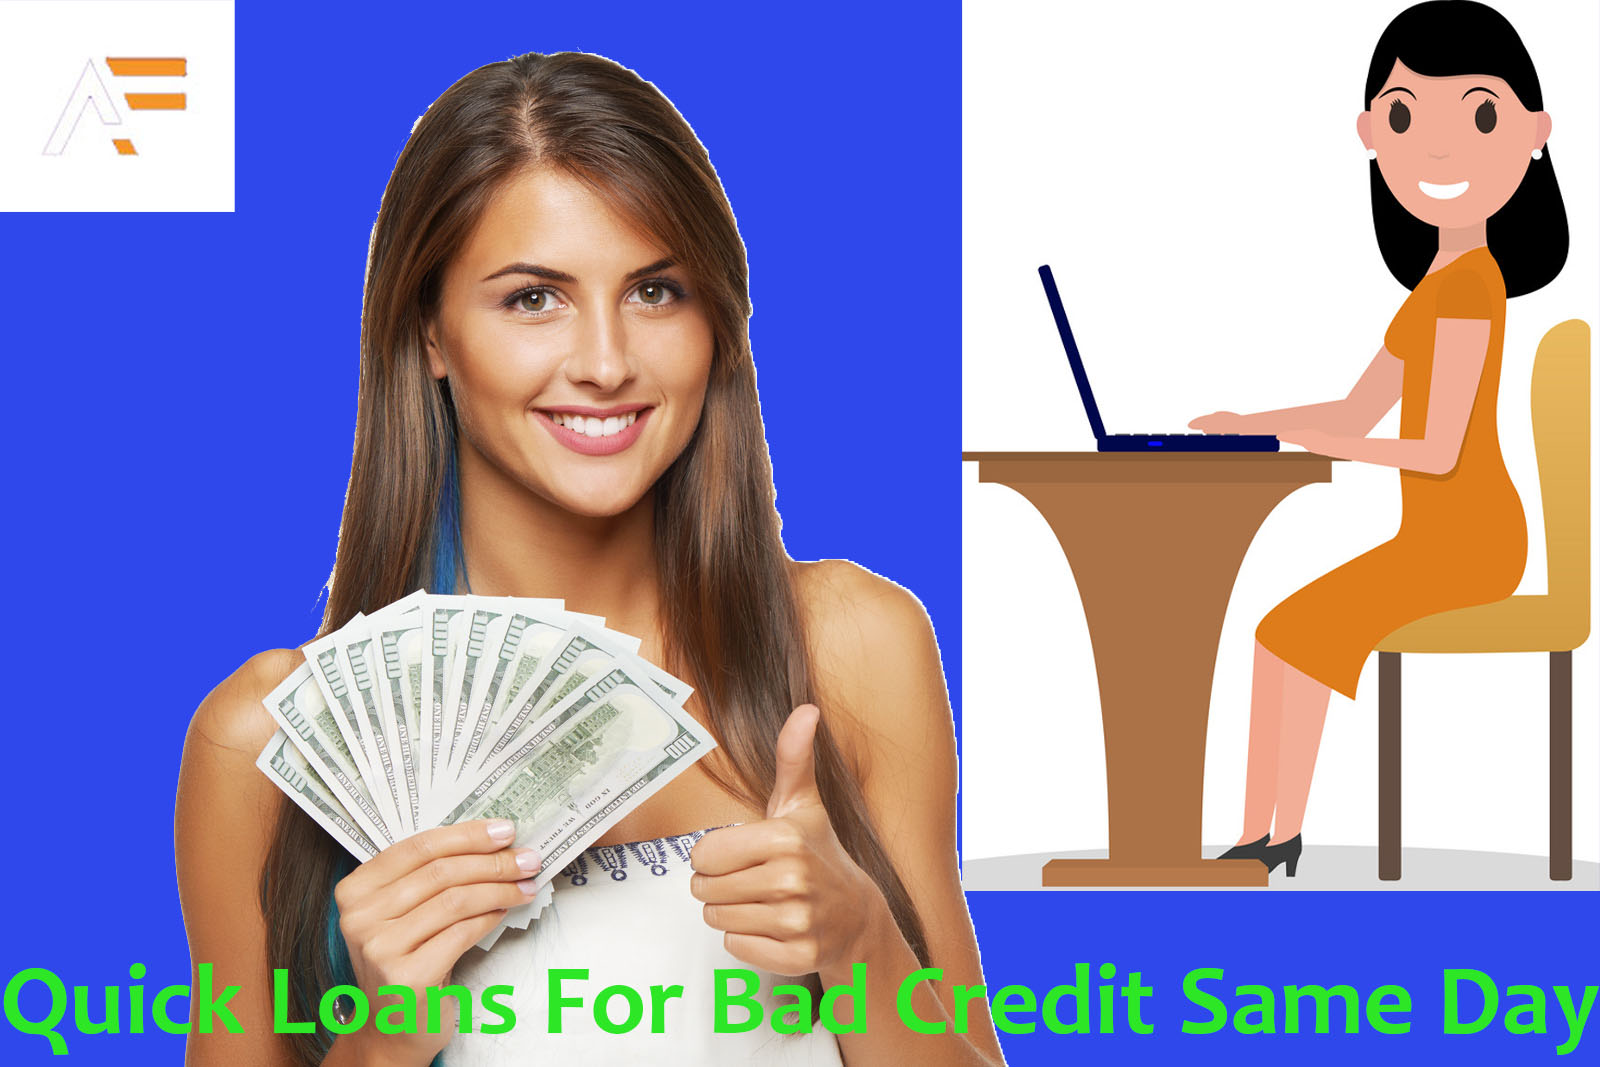 Instant Loans For Bad Credit >> Quick Loans For Bad Credit Same Day Loans For Bad Credit